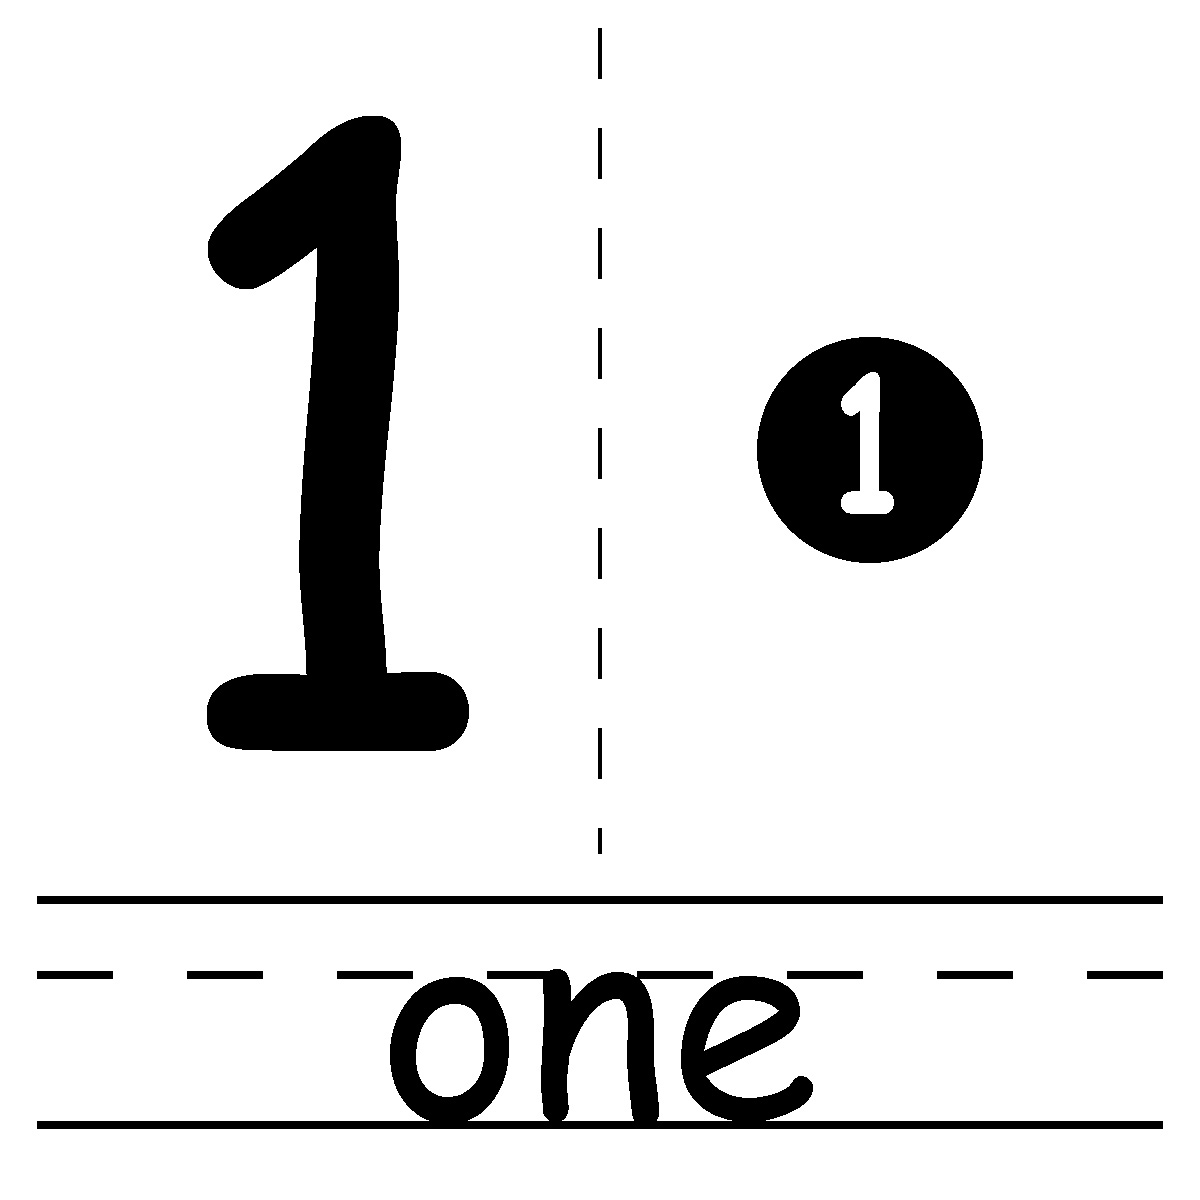 Number 1 Clipart Black And White